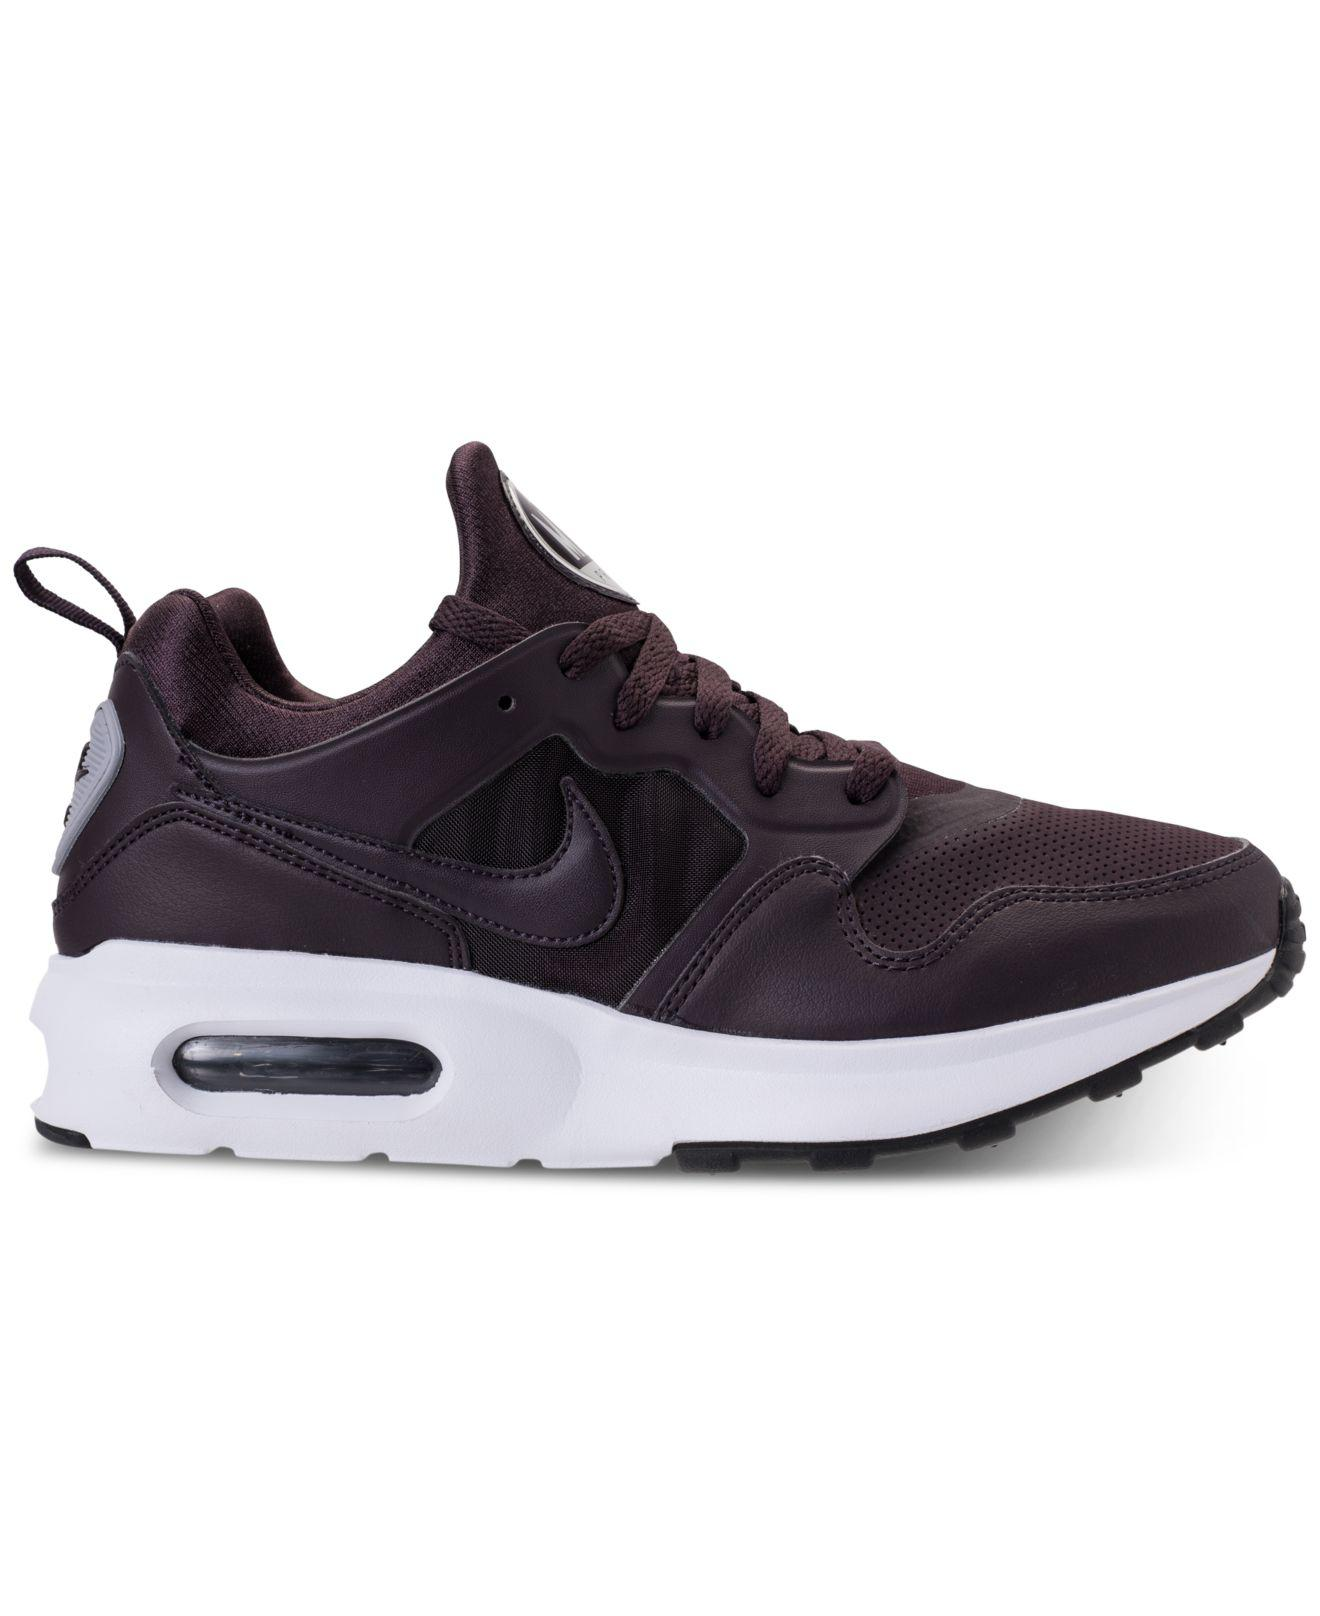 Details about Nike Mens Air Max Prime Sl Low Top Lace Up Trail Running Shoes